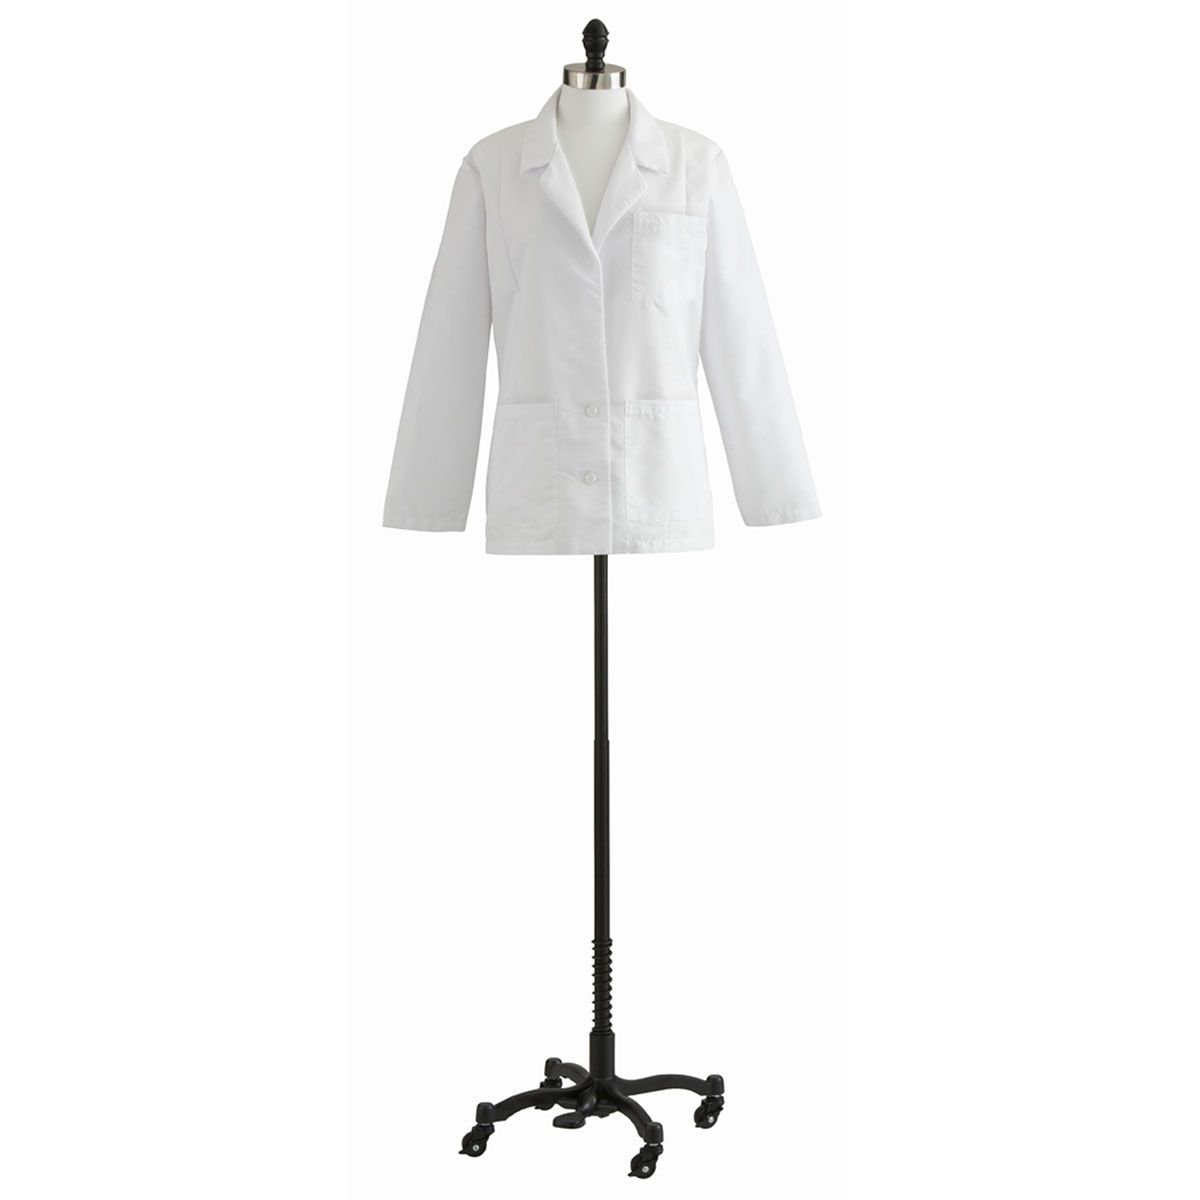 Medline Ladies Consultation Coat - White, 20, Each - Model 88018QHW20